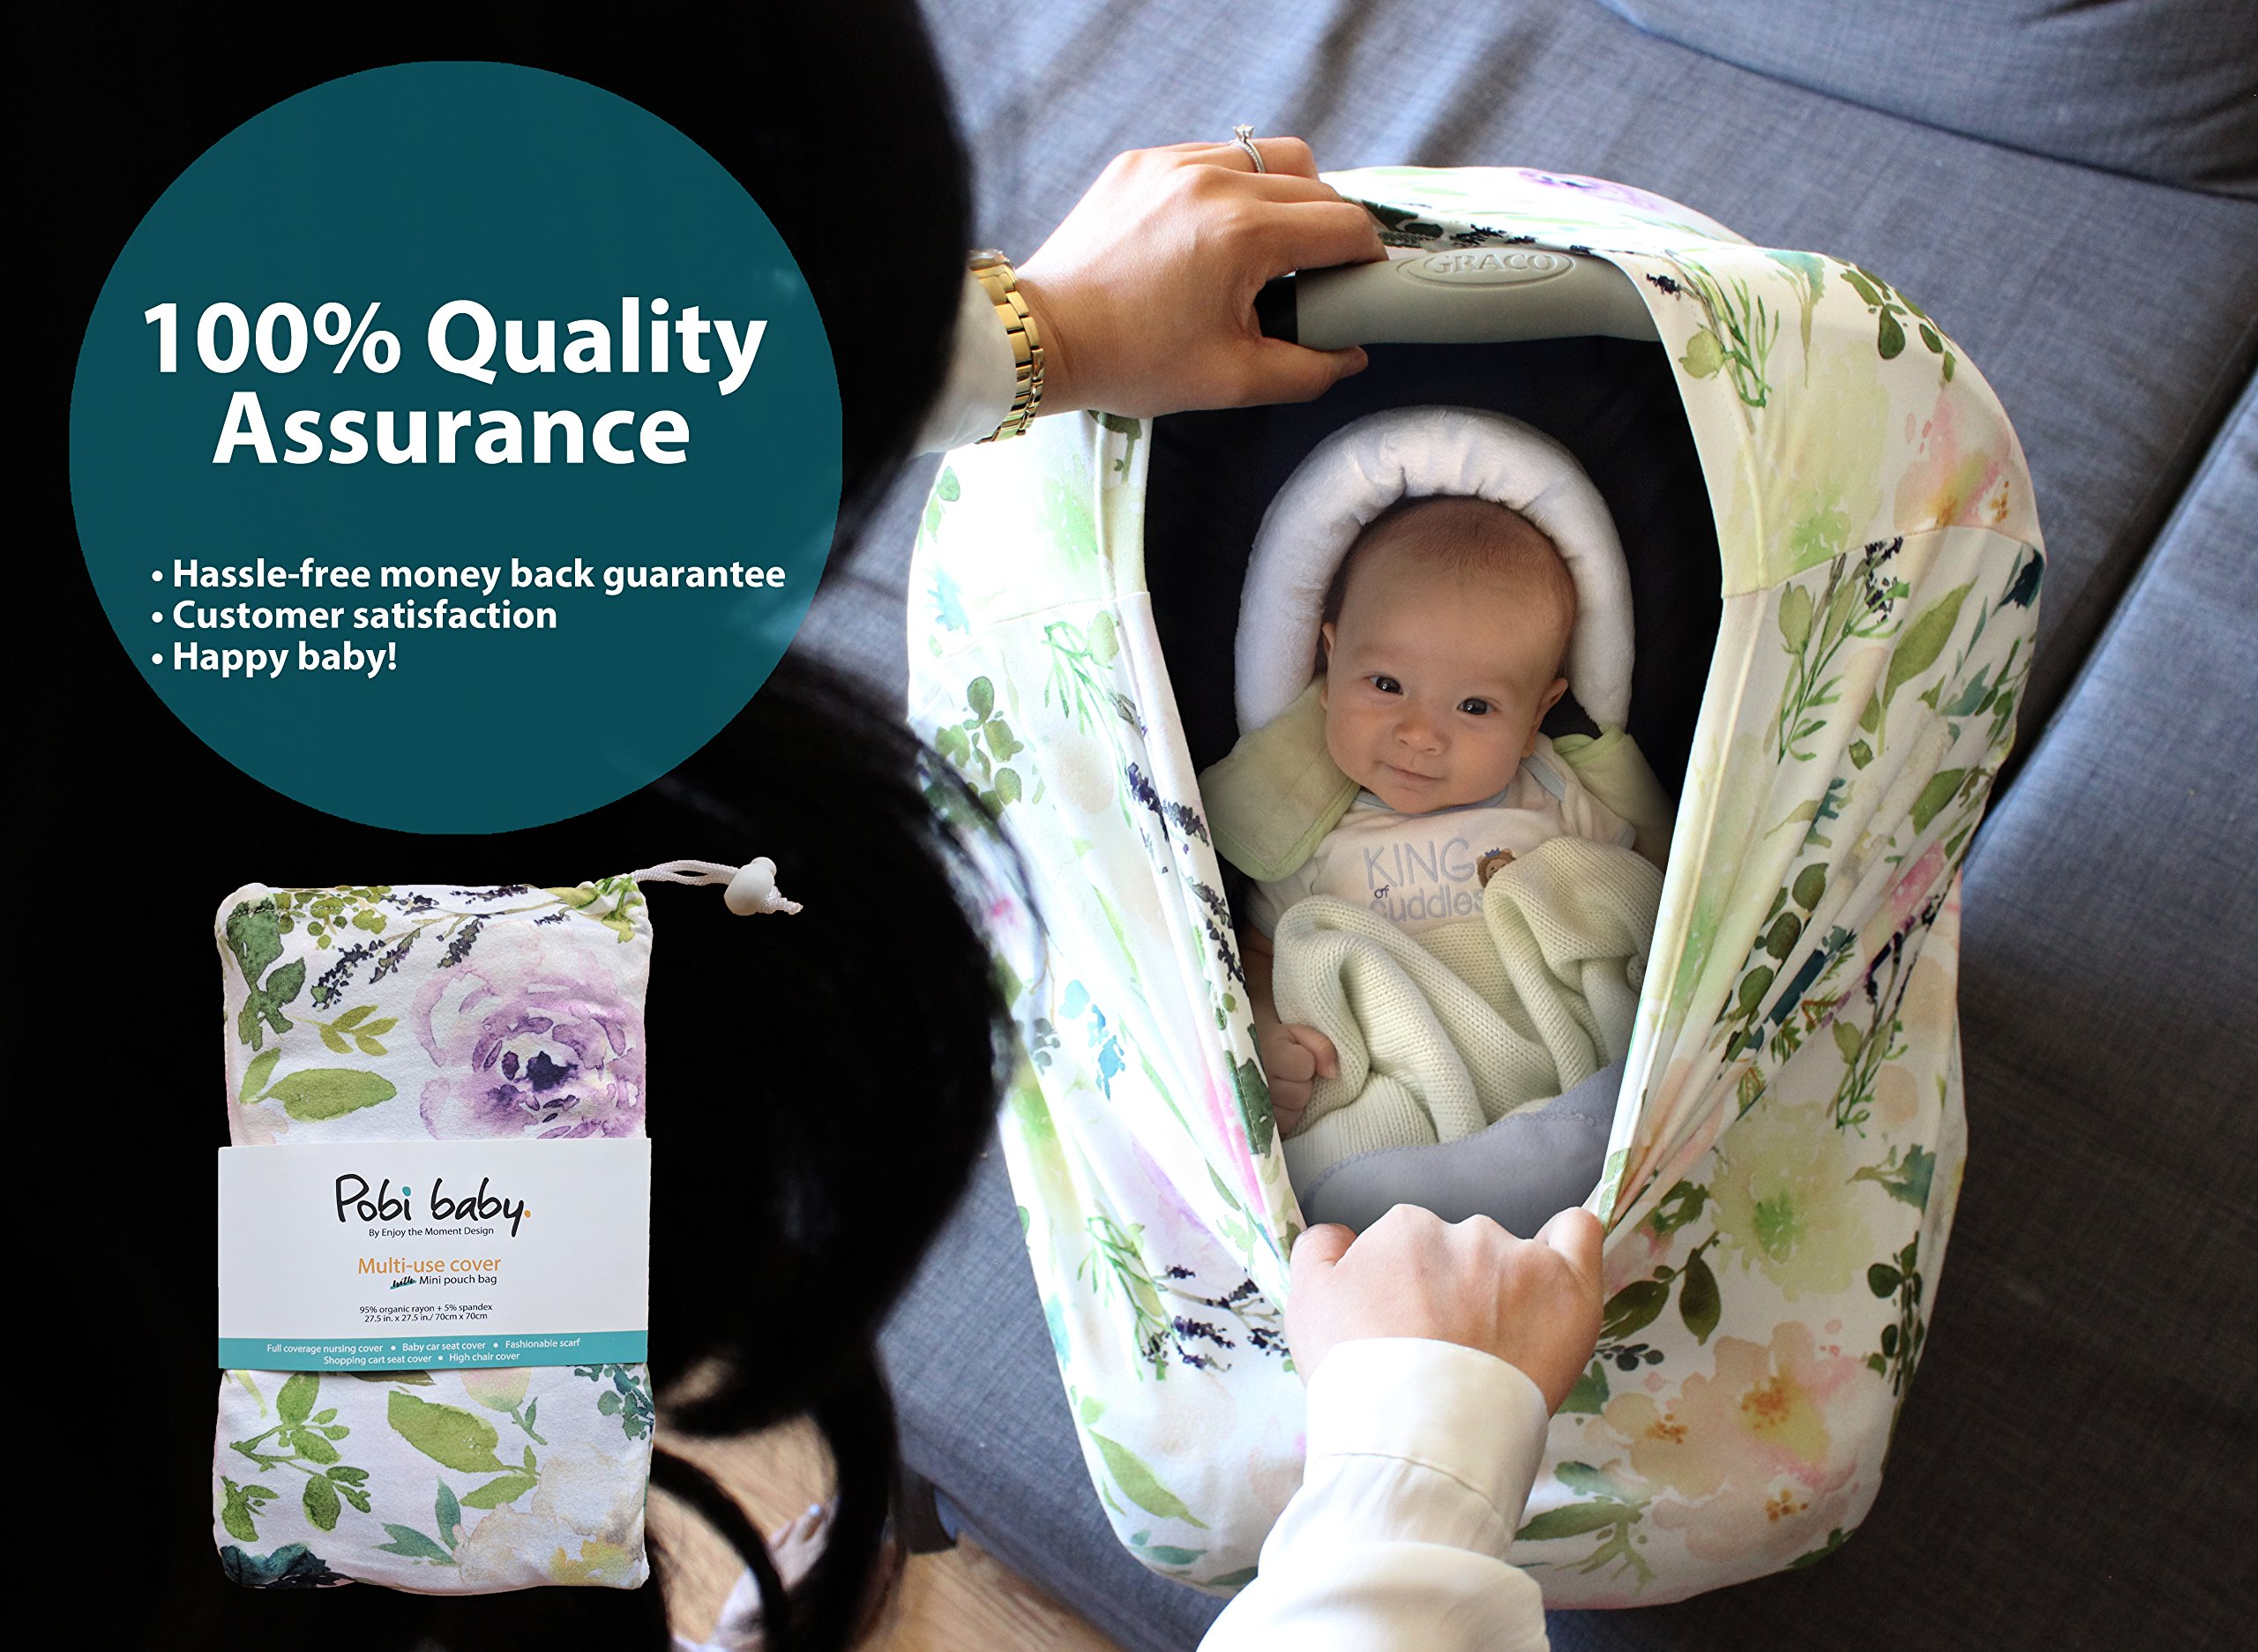 Premium Soft, Stretchy, and Spacious 4 in 1 Multi-Use Cover for Nursing, Baby Car Seat, Stroller, Scarf, and Shopping Cart - Best Gifts by Pobibaby (Allure) by Pobibaby (Image #8)